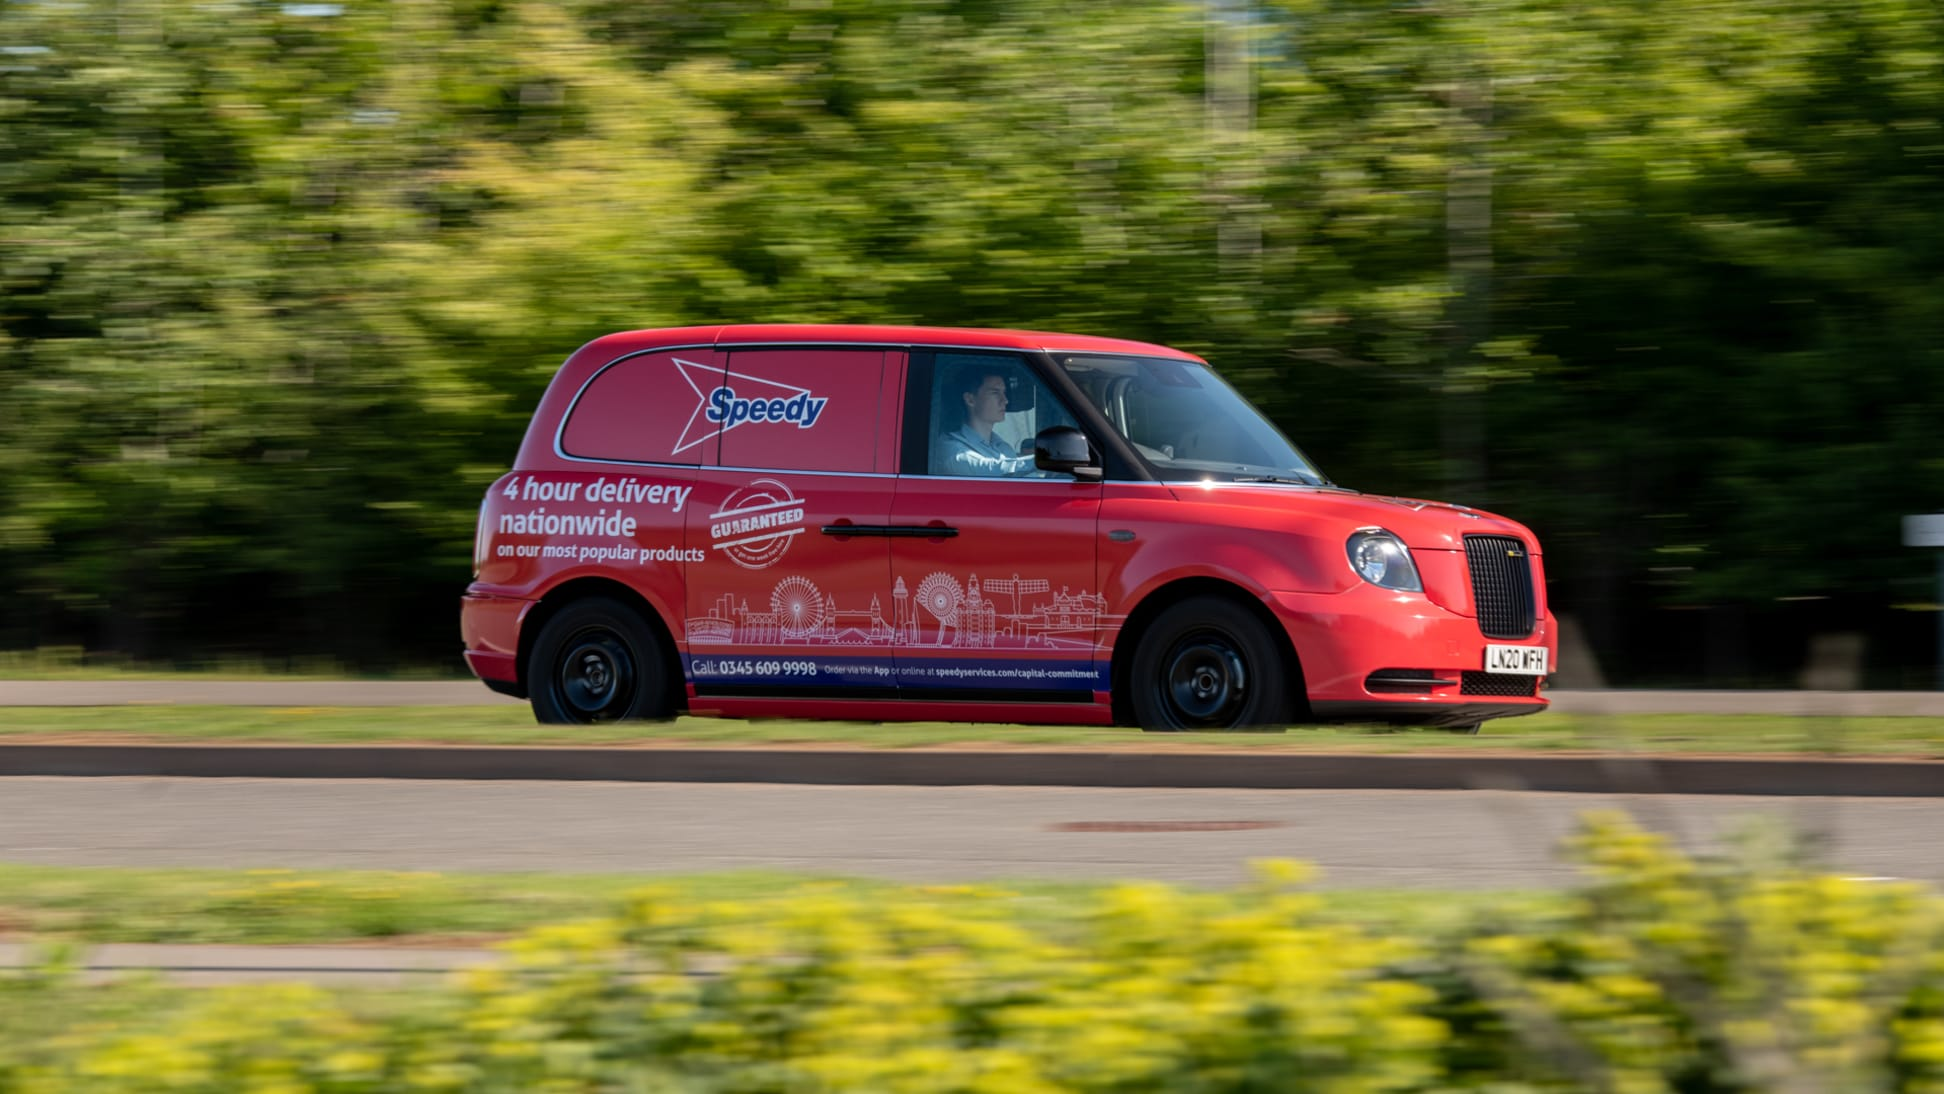 LEVC and Speedy team up to test new electric van